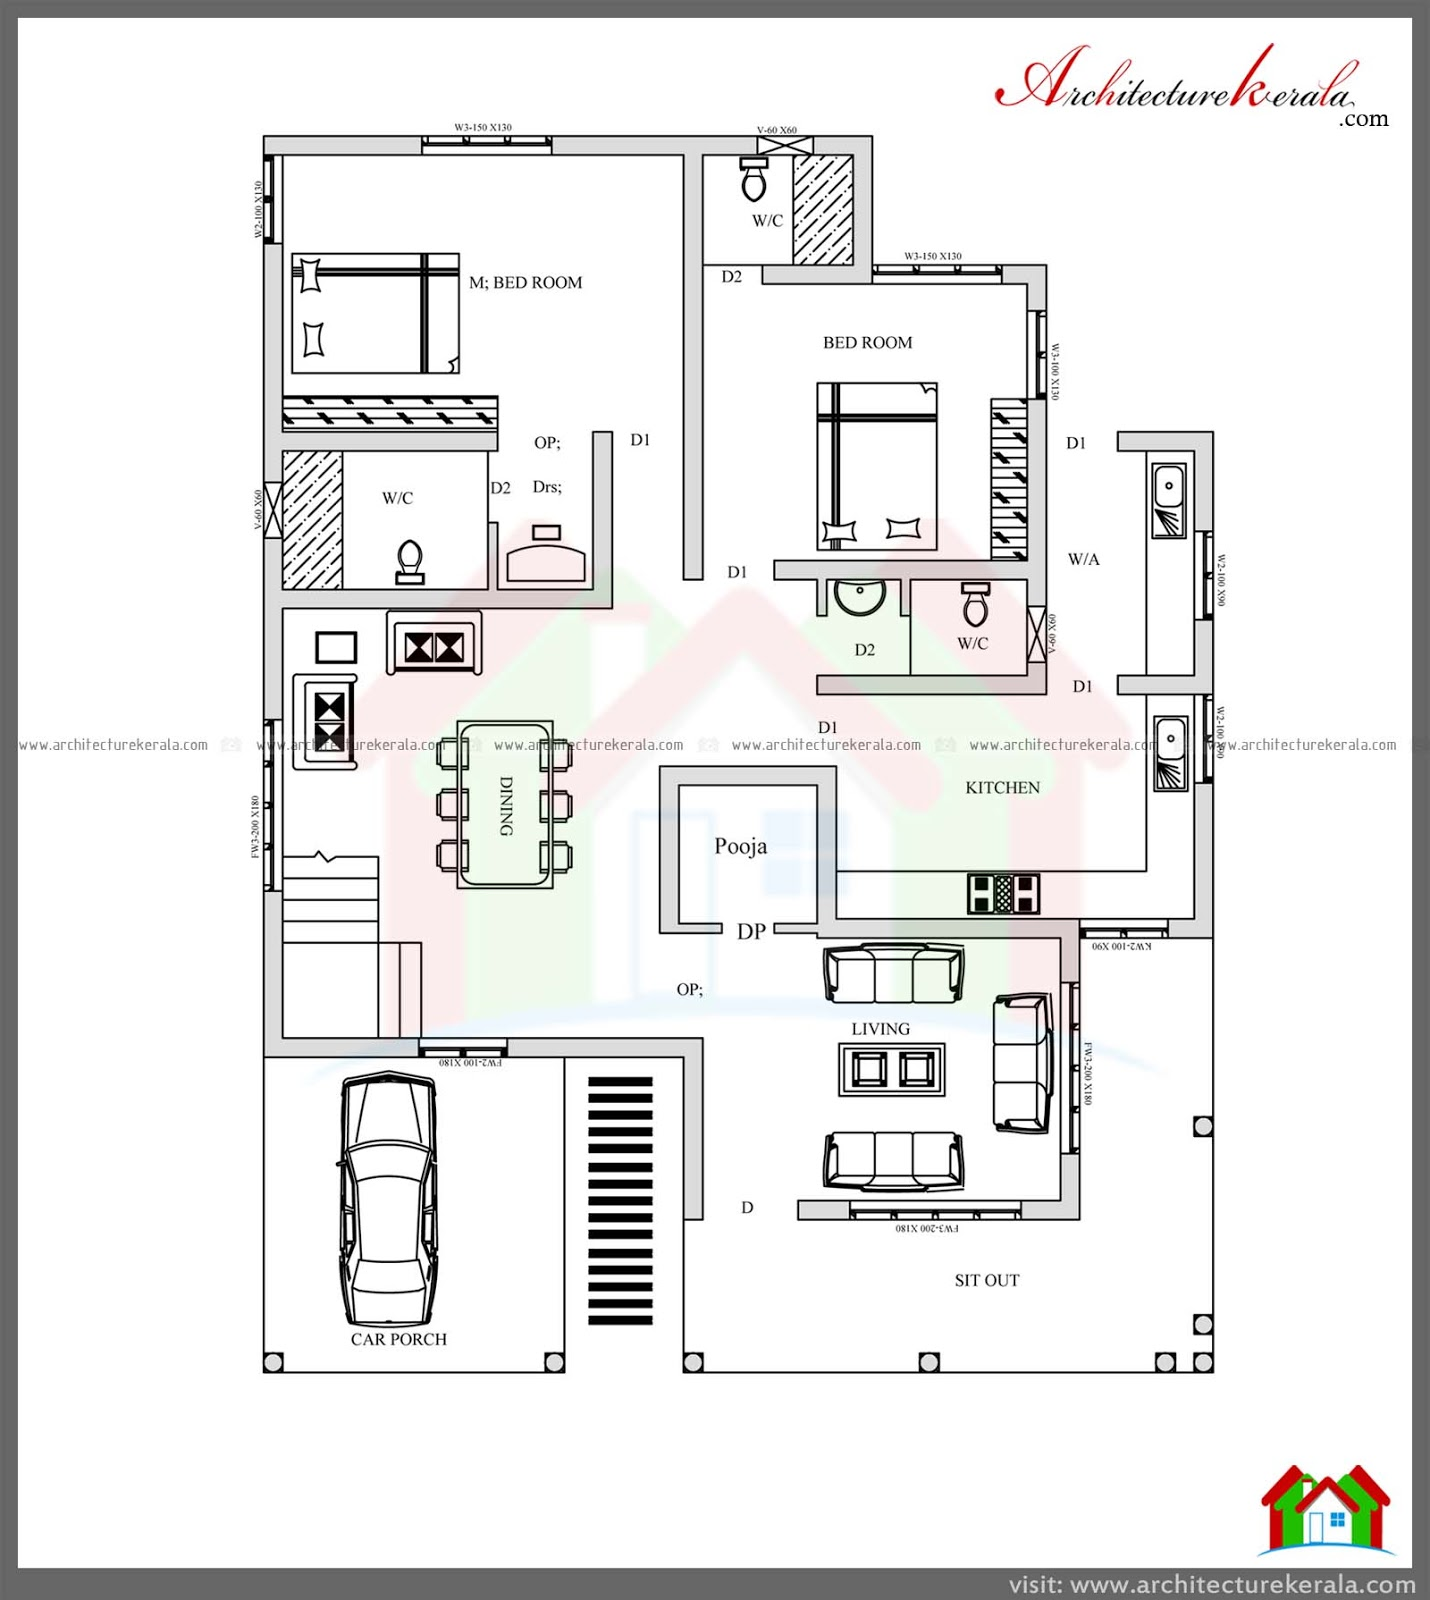 Kerala Home Design And Floor Plans: 4 BED HOUSE PLAN WITH POOJA ROOM